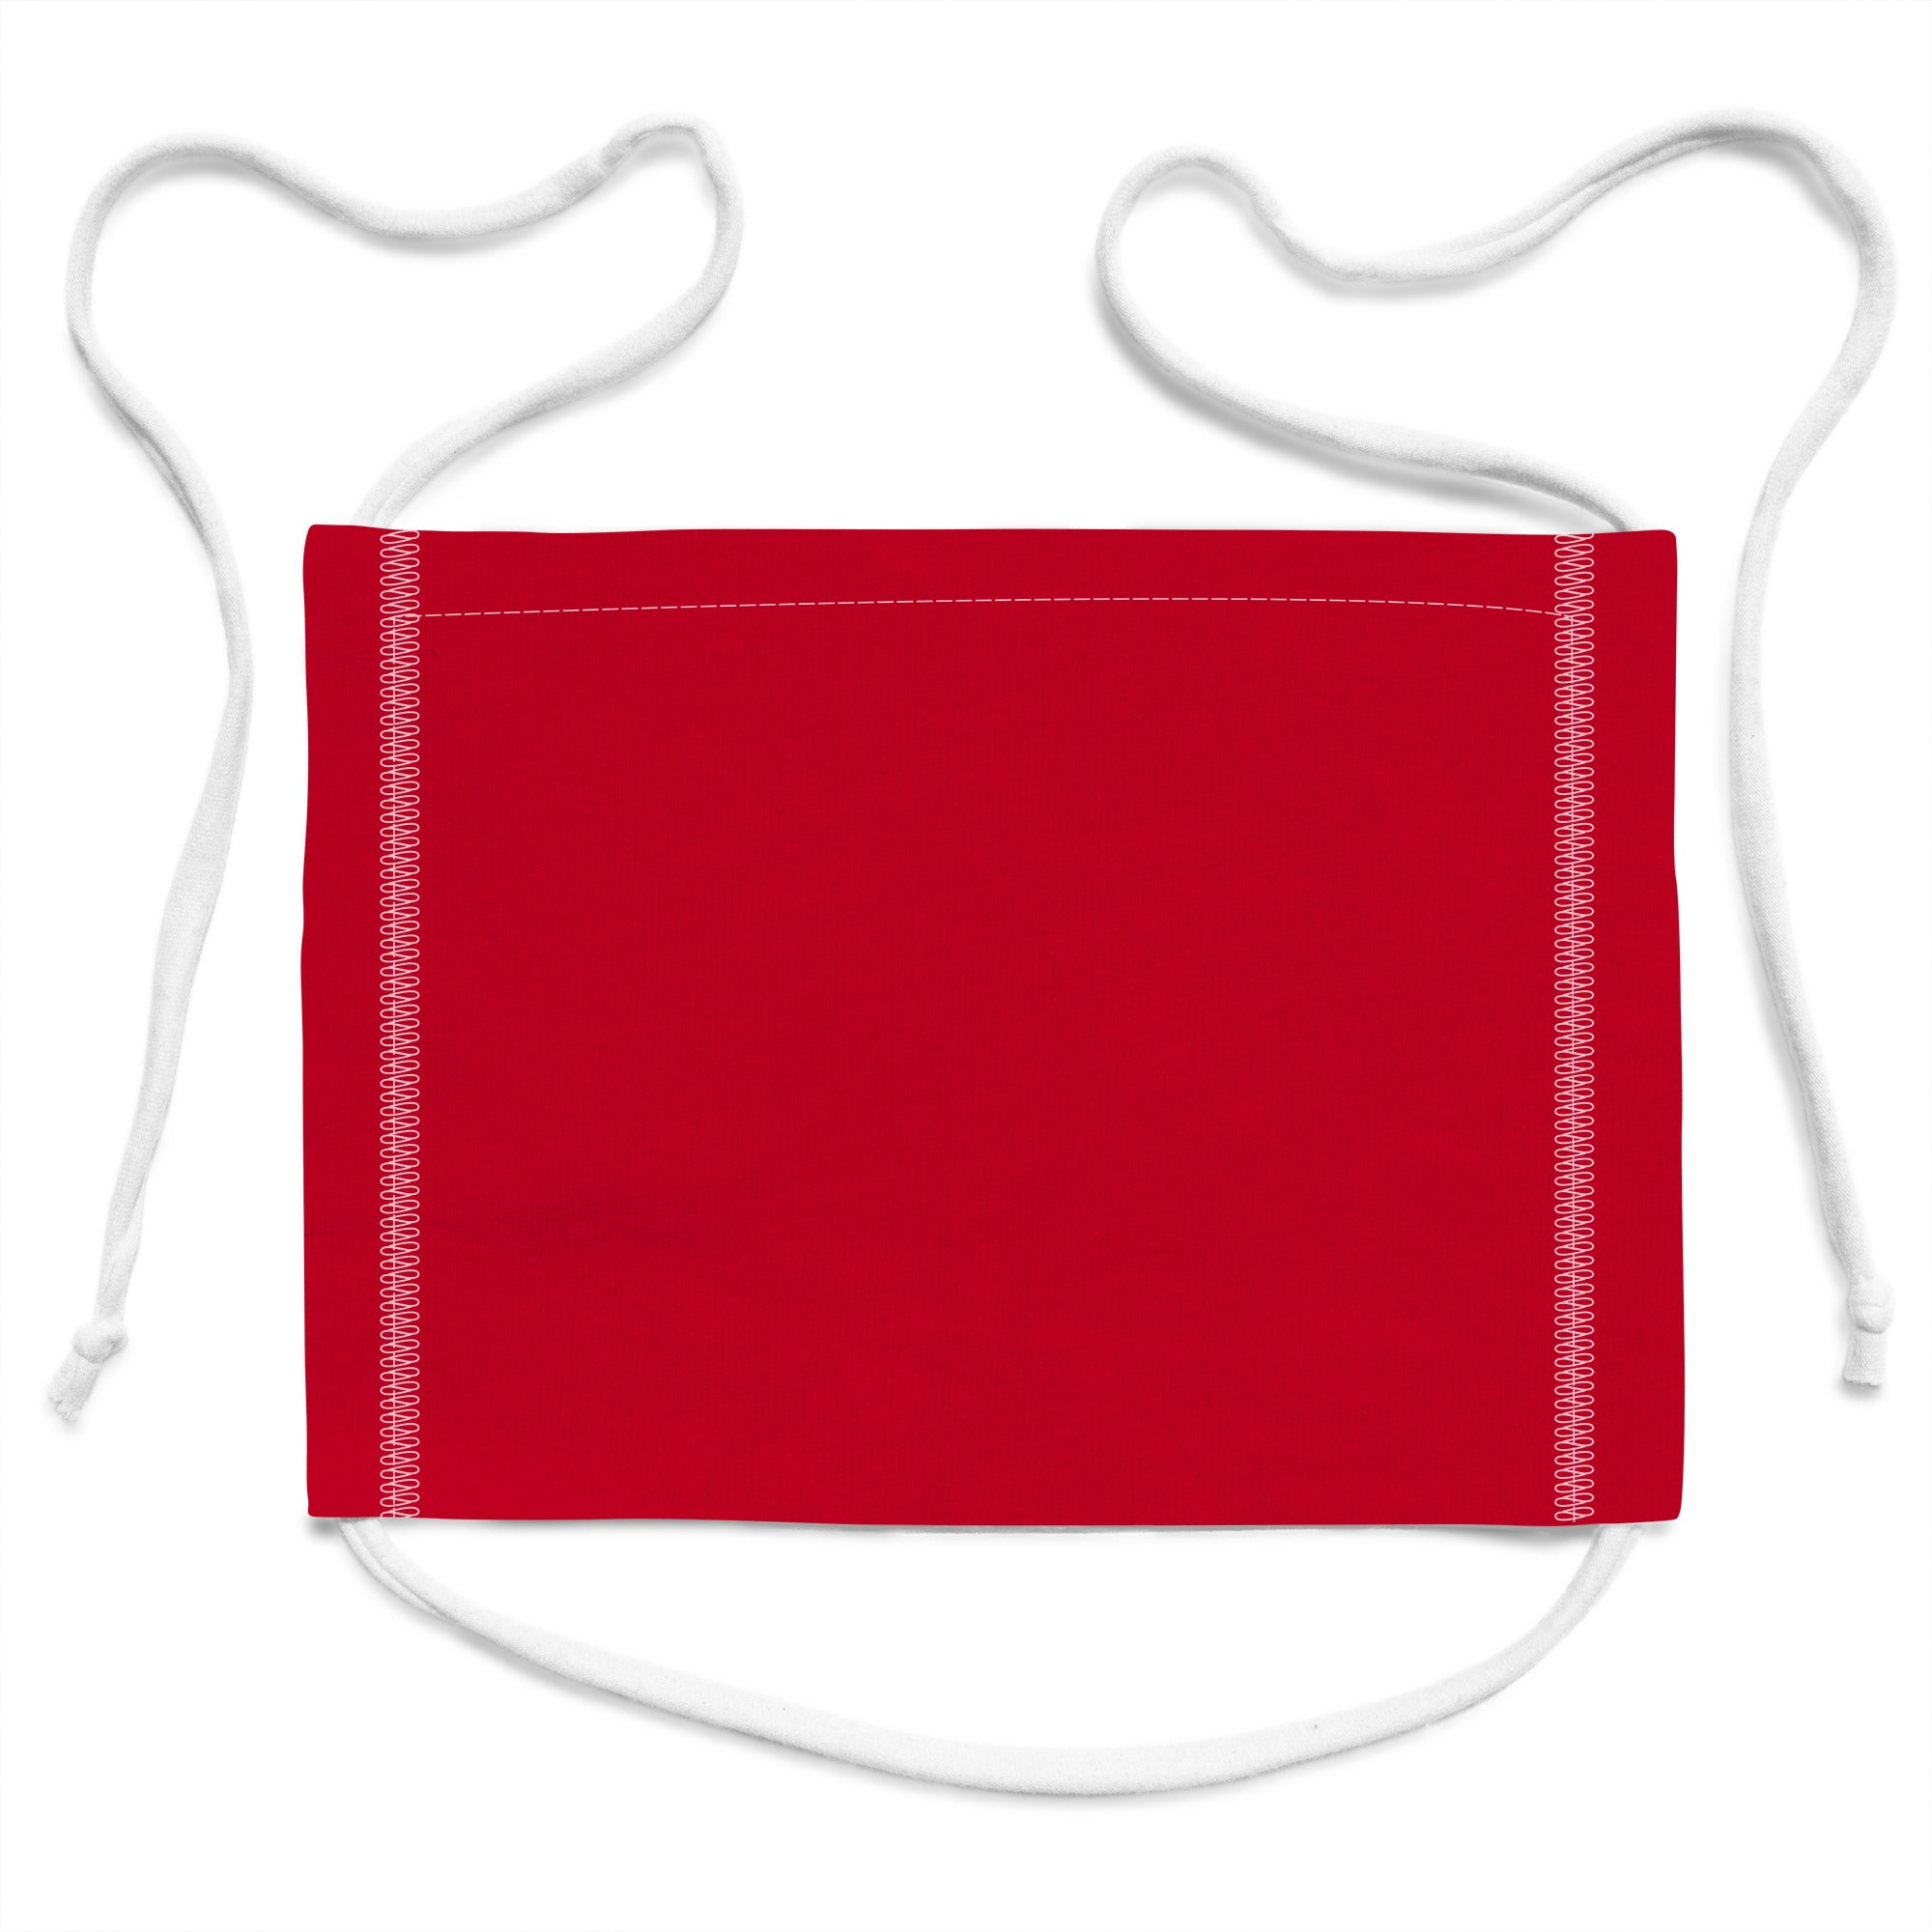 CHEAP Red Face Mask 26660545843 – Clothing Accessories